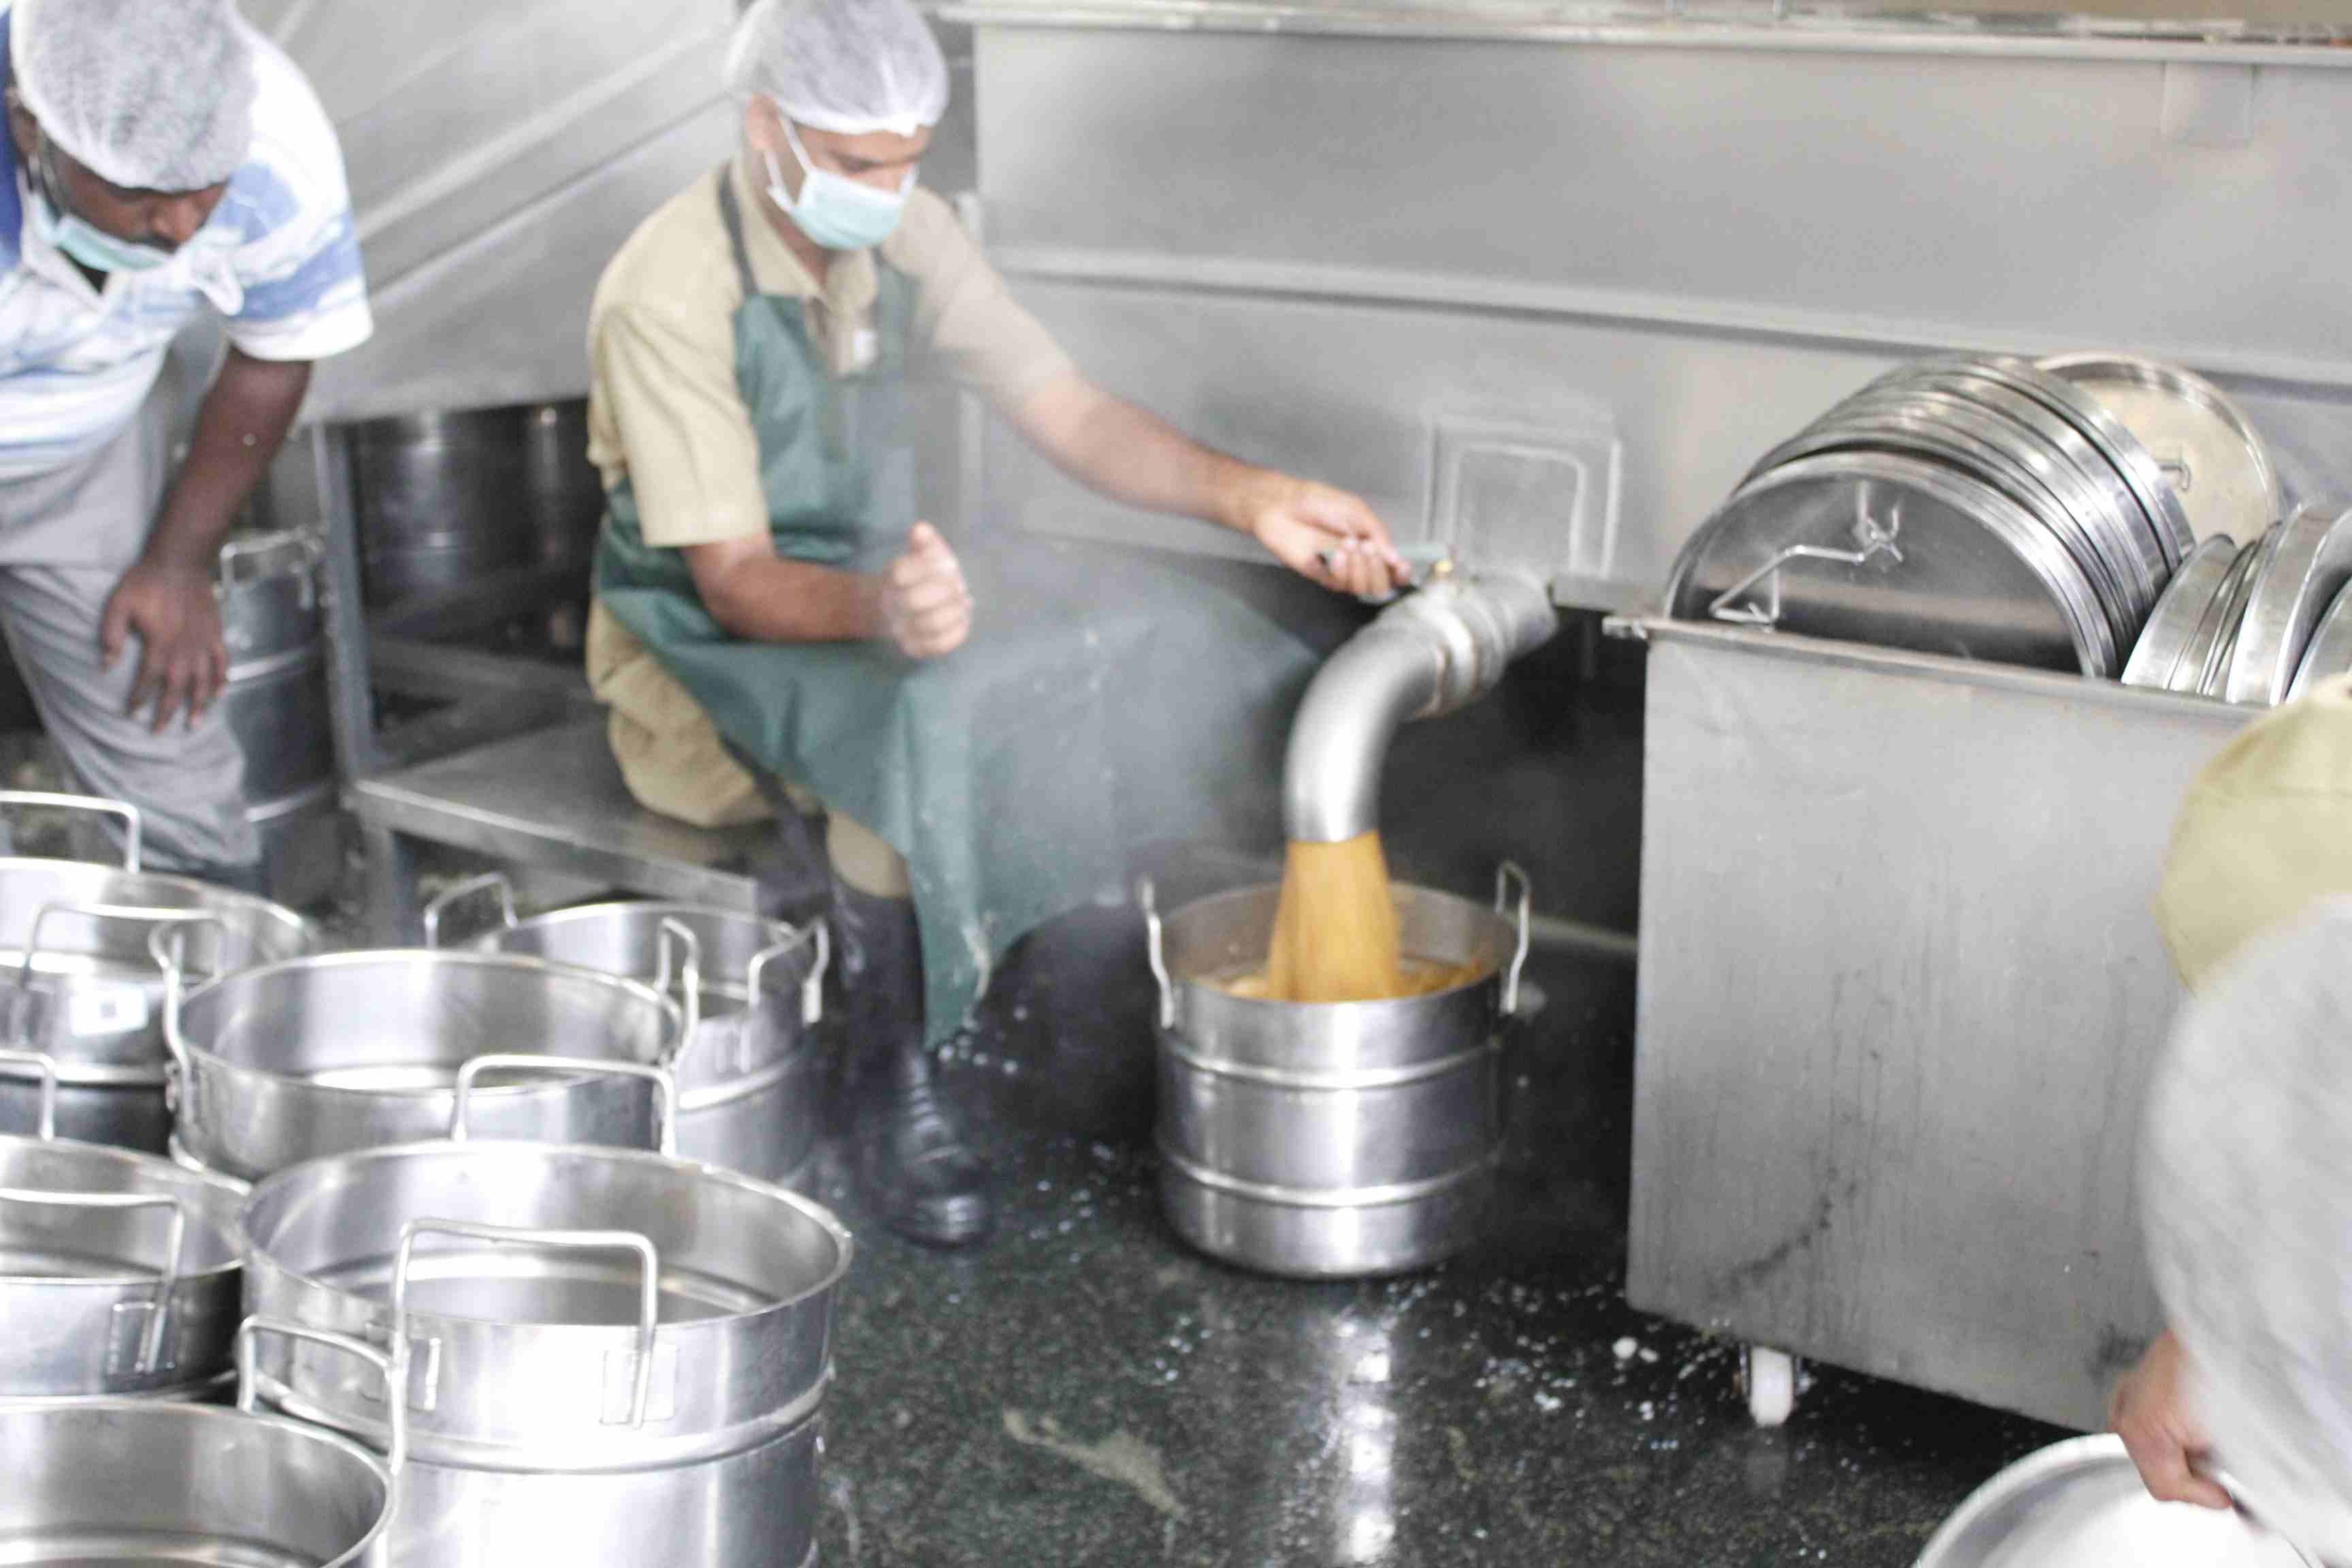 Sambar being filled to School vessels